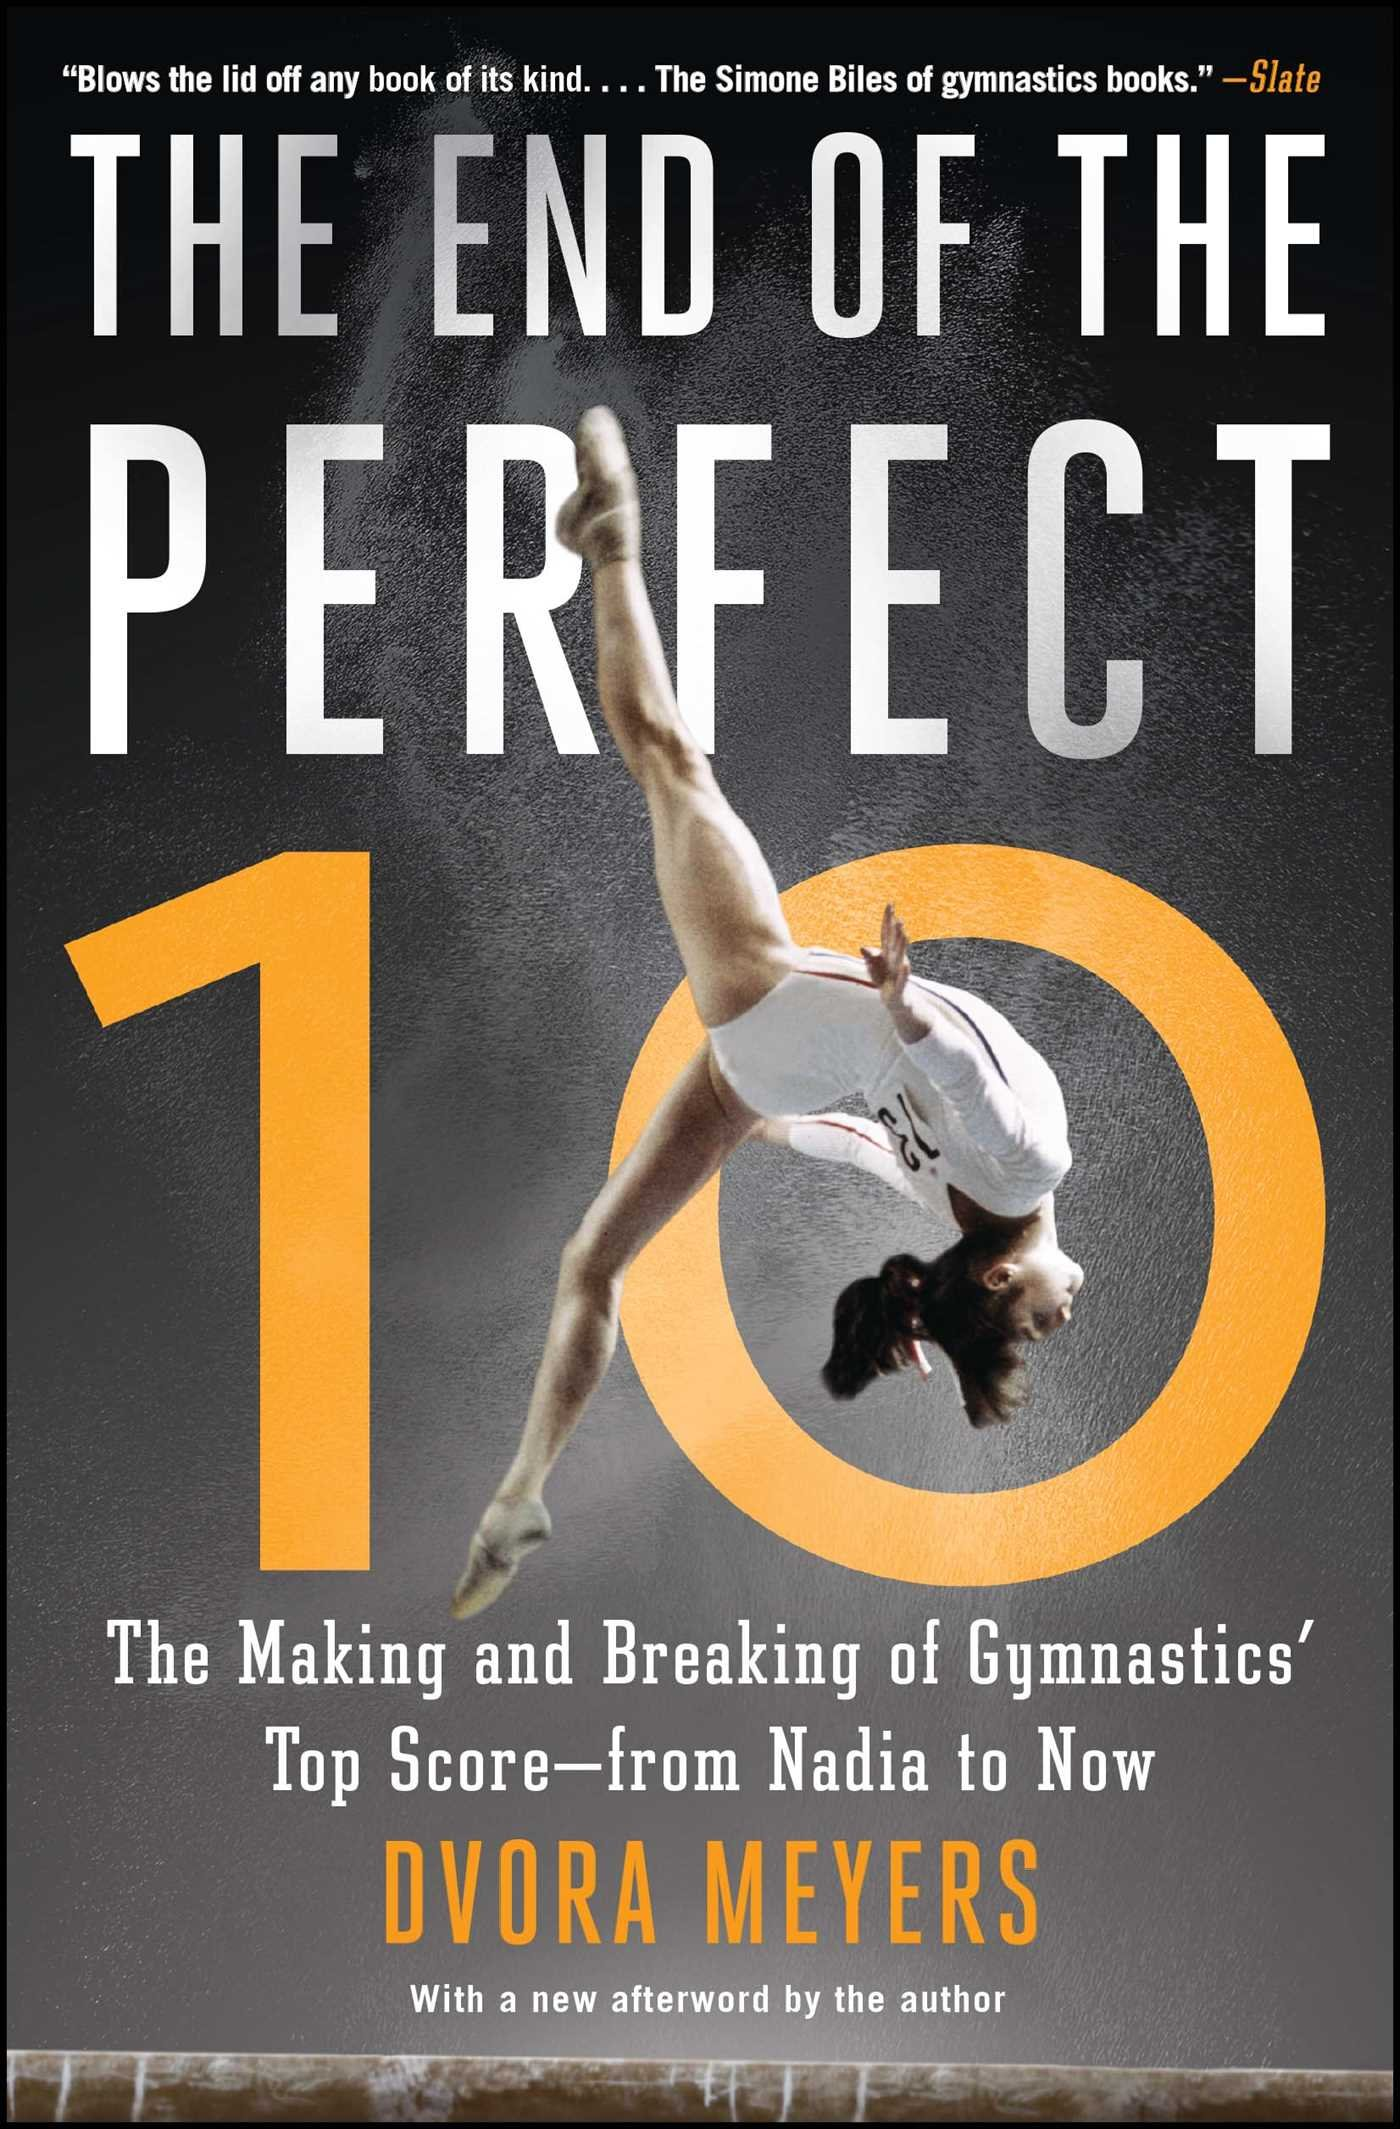 The End Of The Perfect 10  The Making And Breaking Of Gymnastics' Top Score ―from Nadia To Now